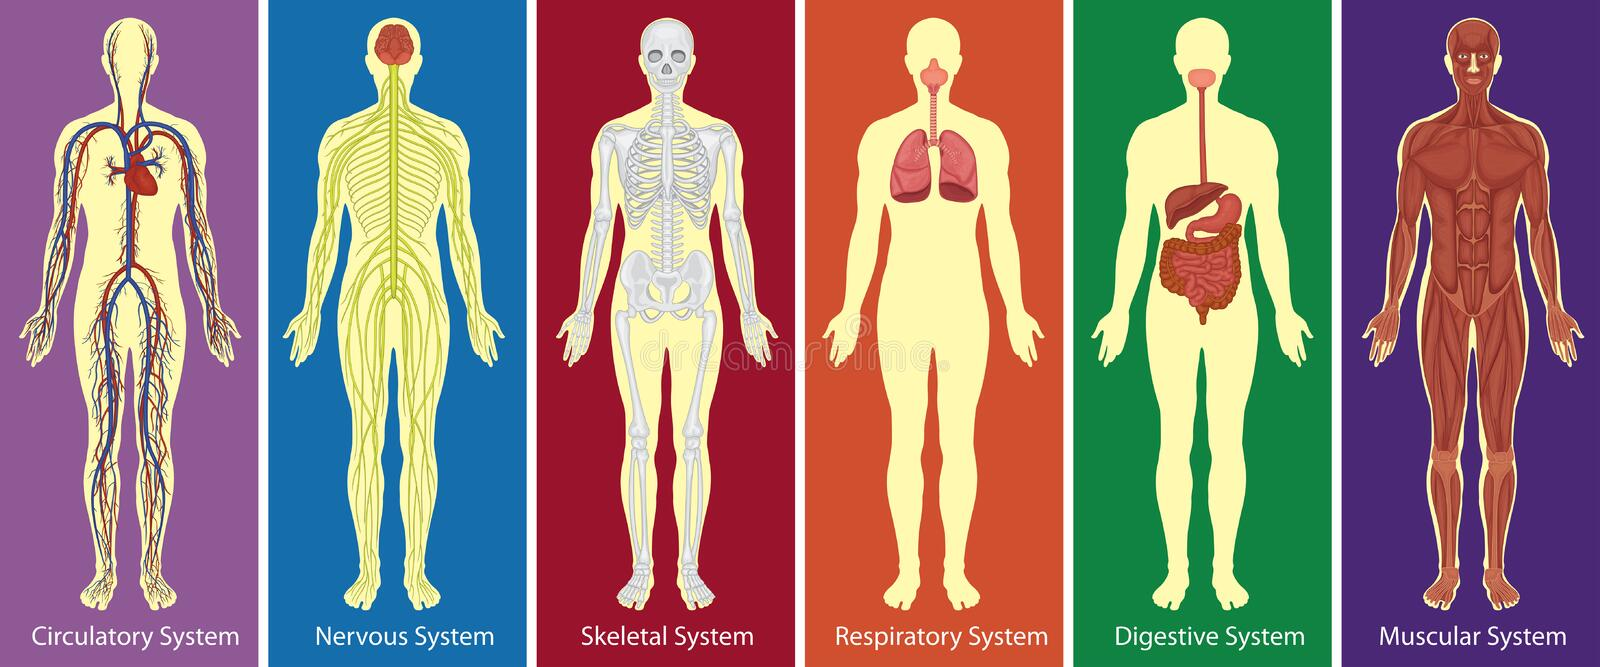 Different systems of human body diagram. Illustration royalty free illustration